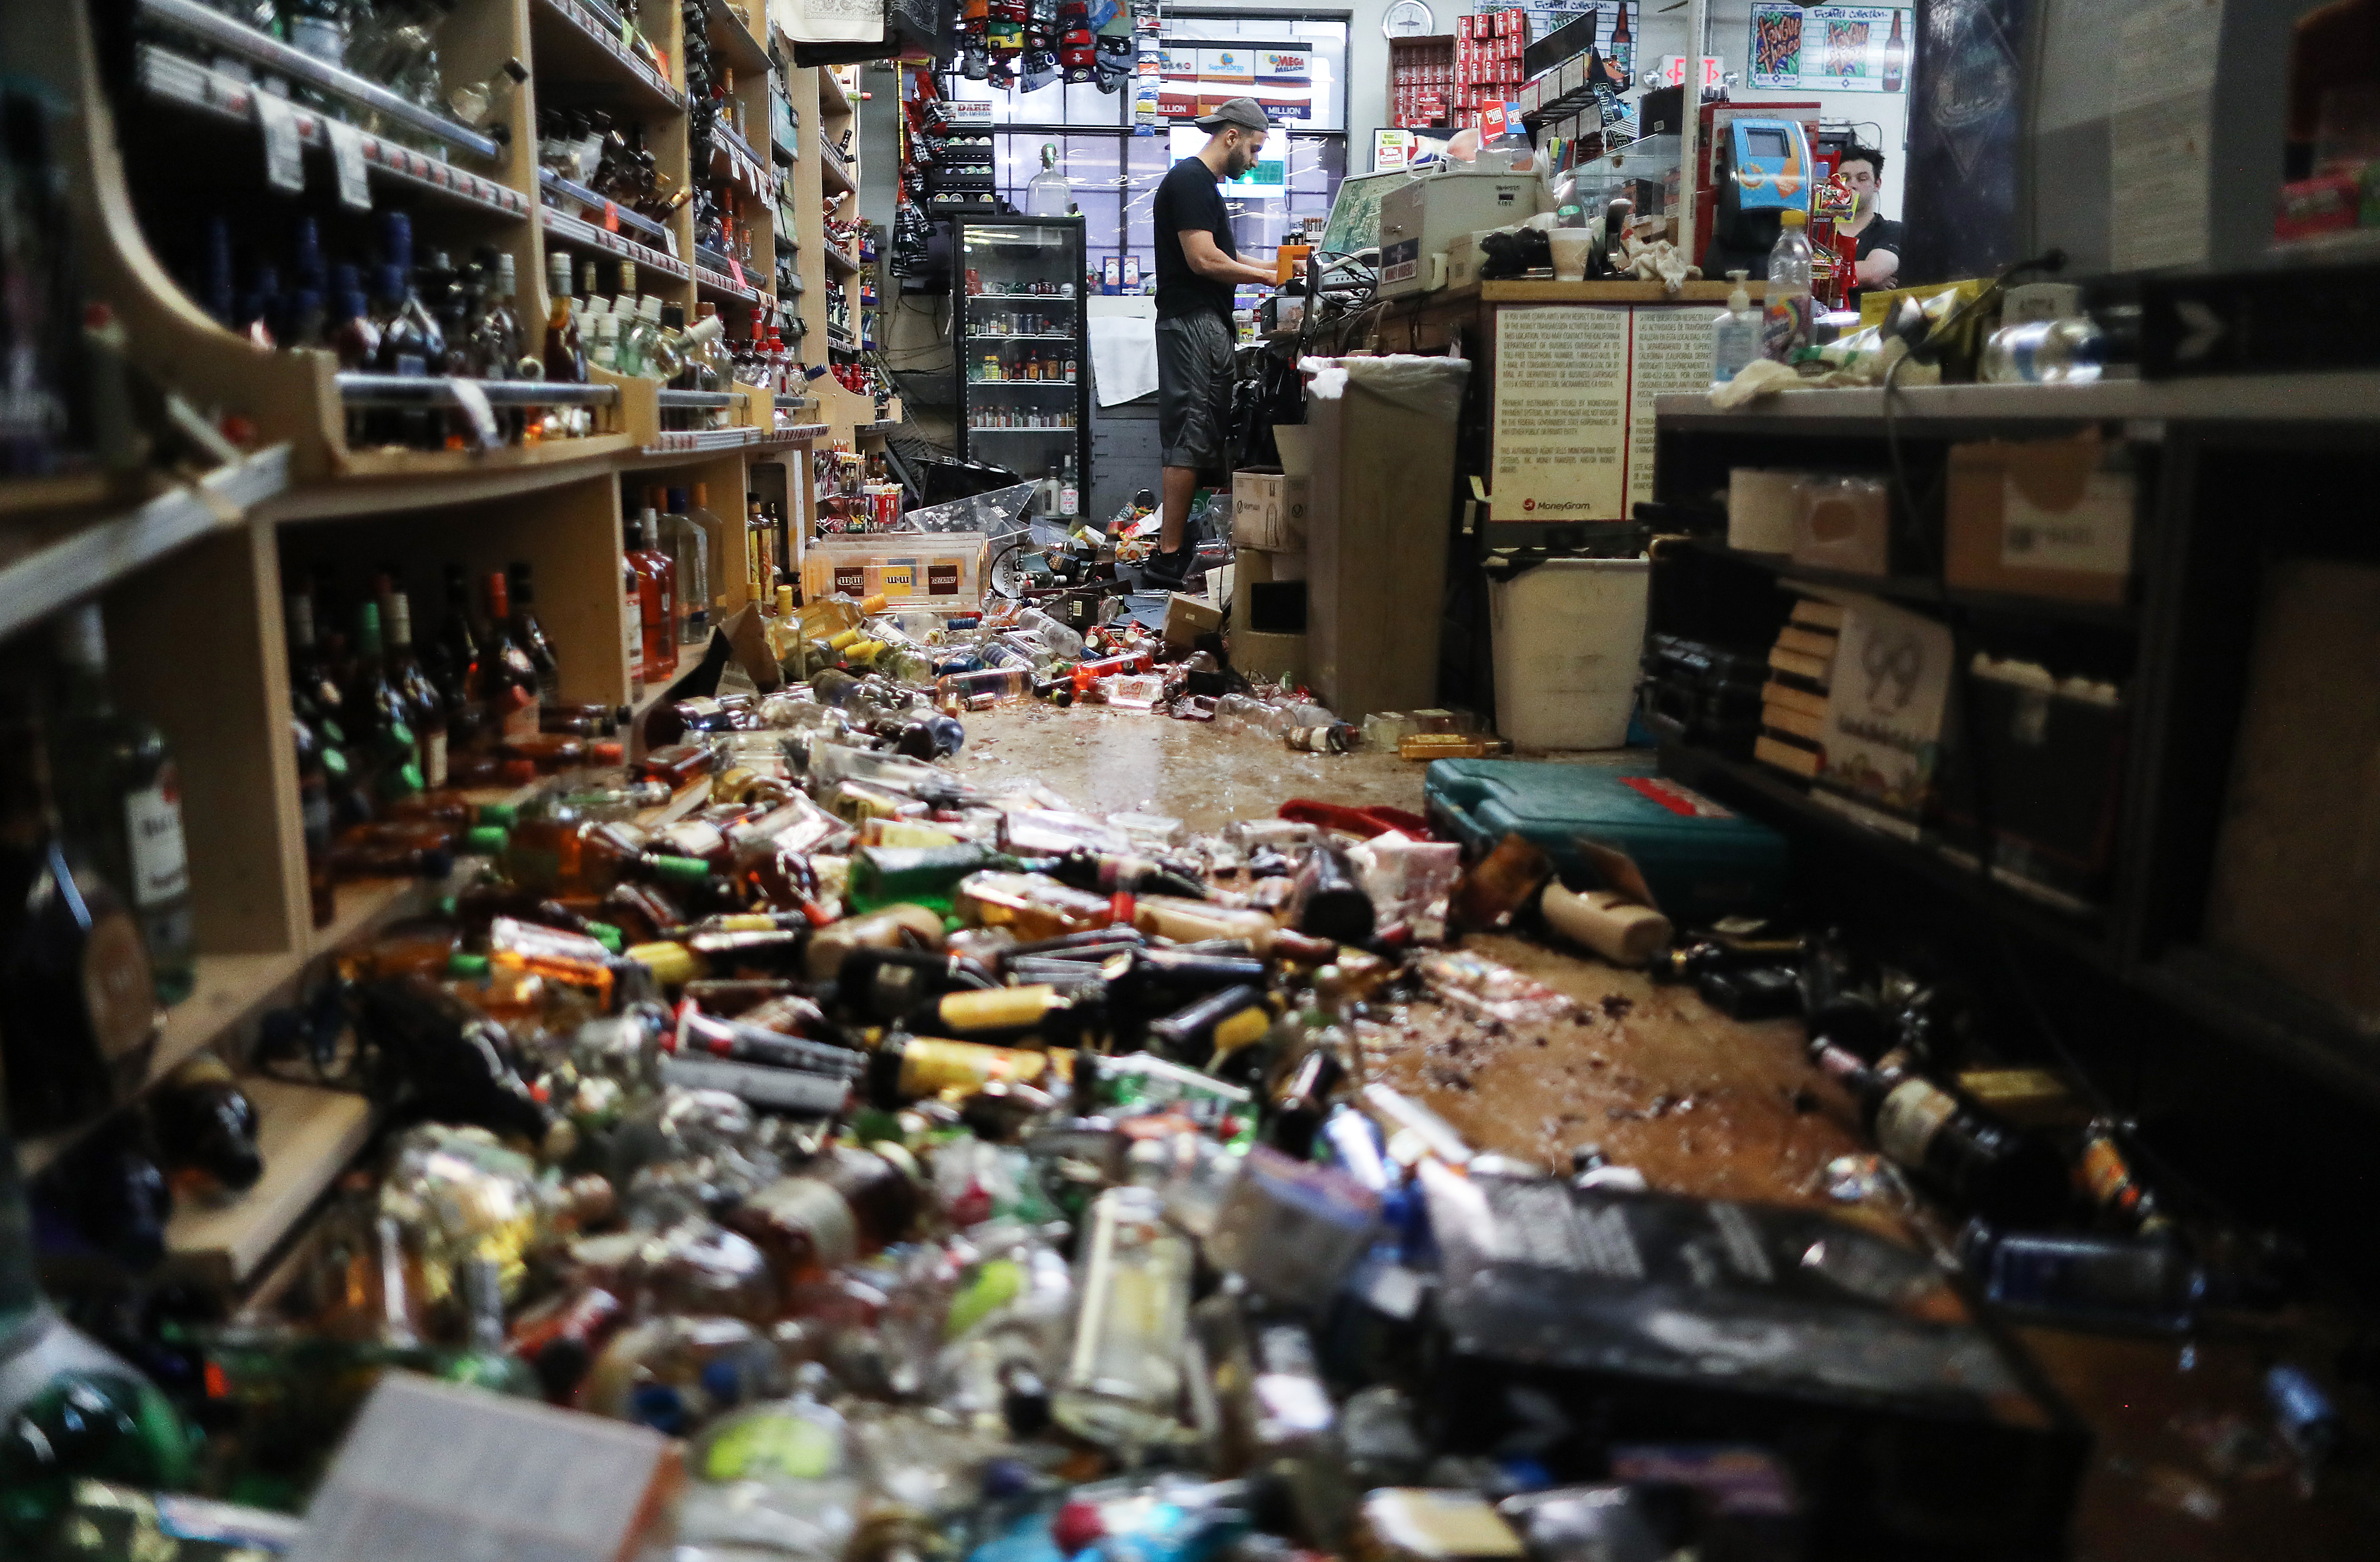 An employee works at the cash register at Ridgecrest Market, near broken bottles scattered on the floor, following a 7.1 magnitude earthquake.